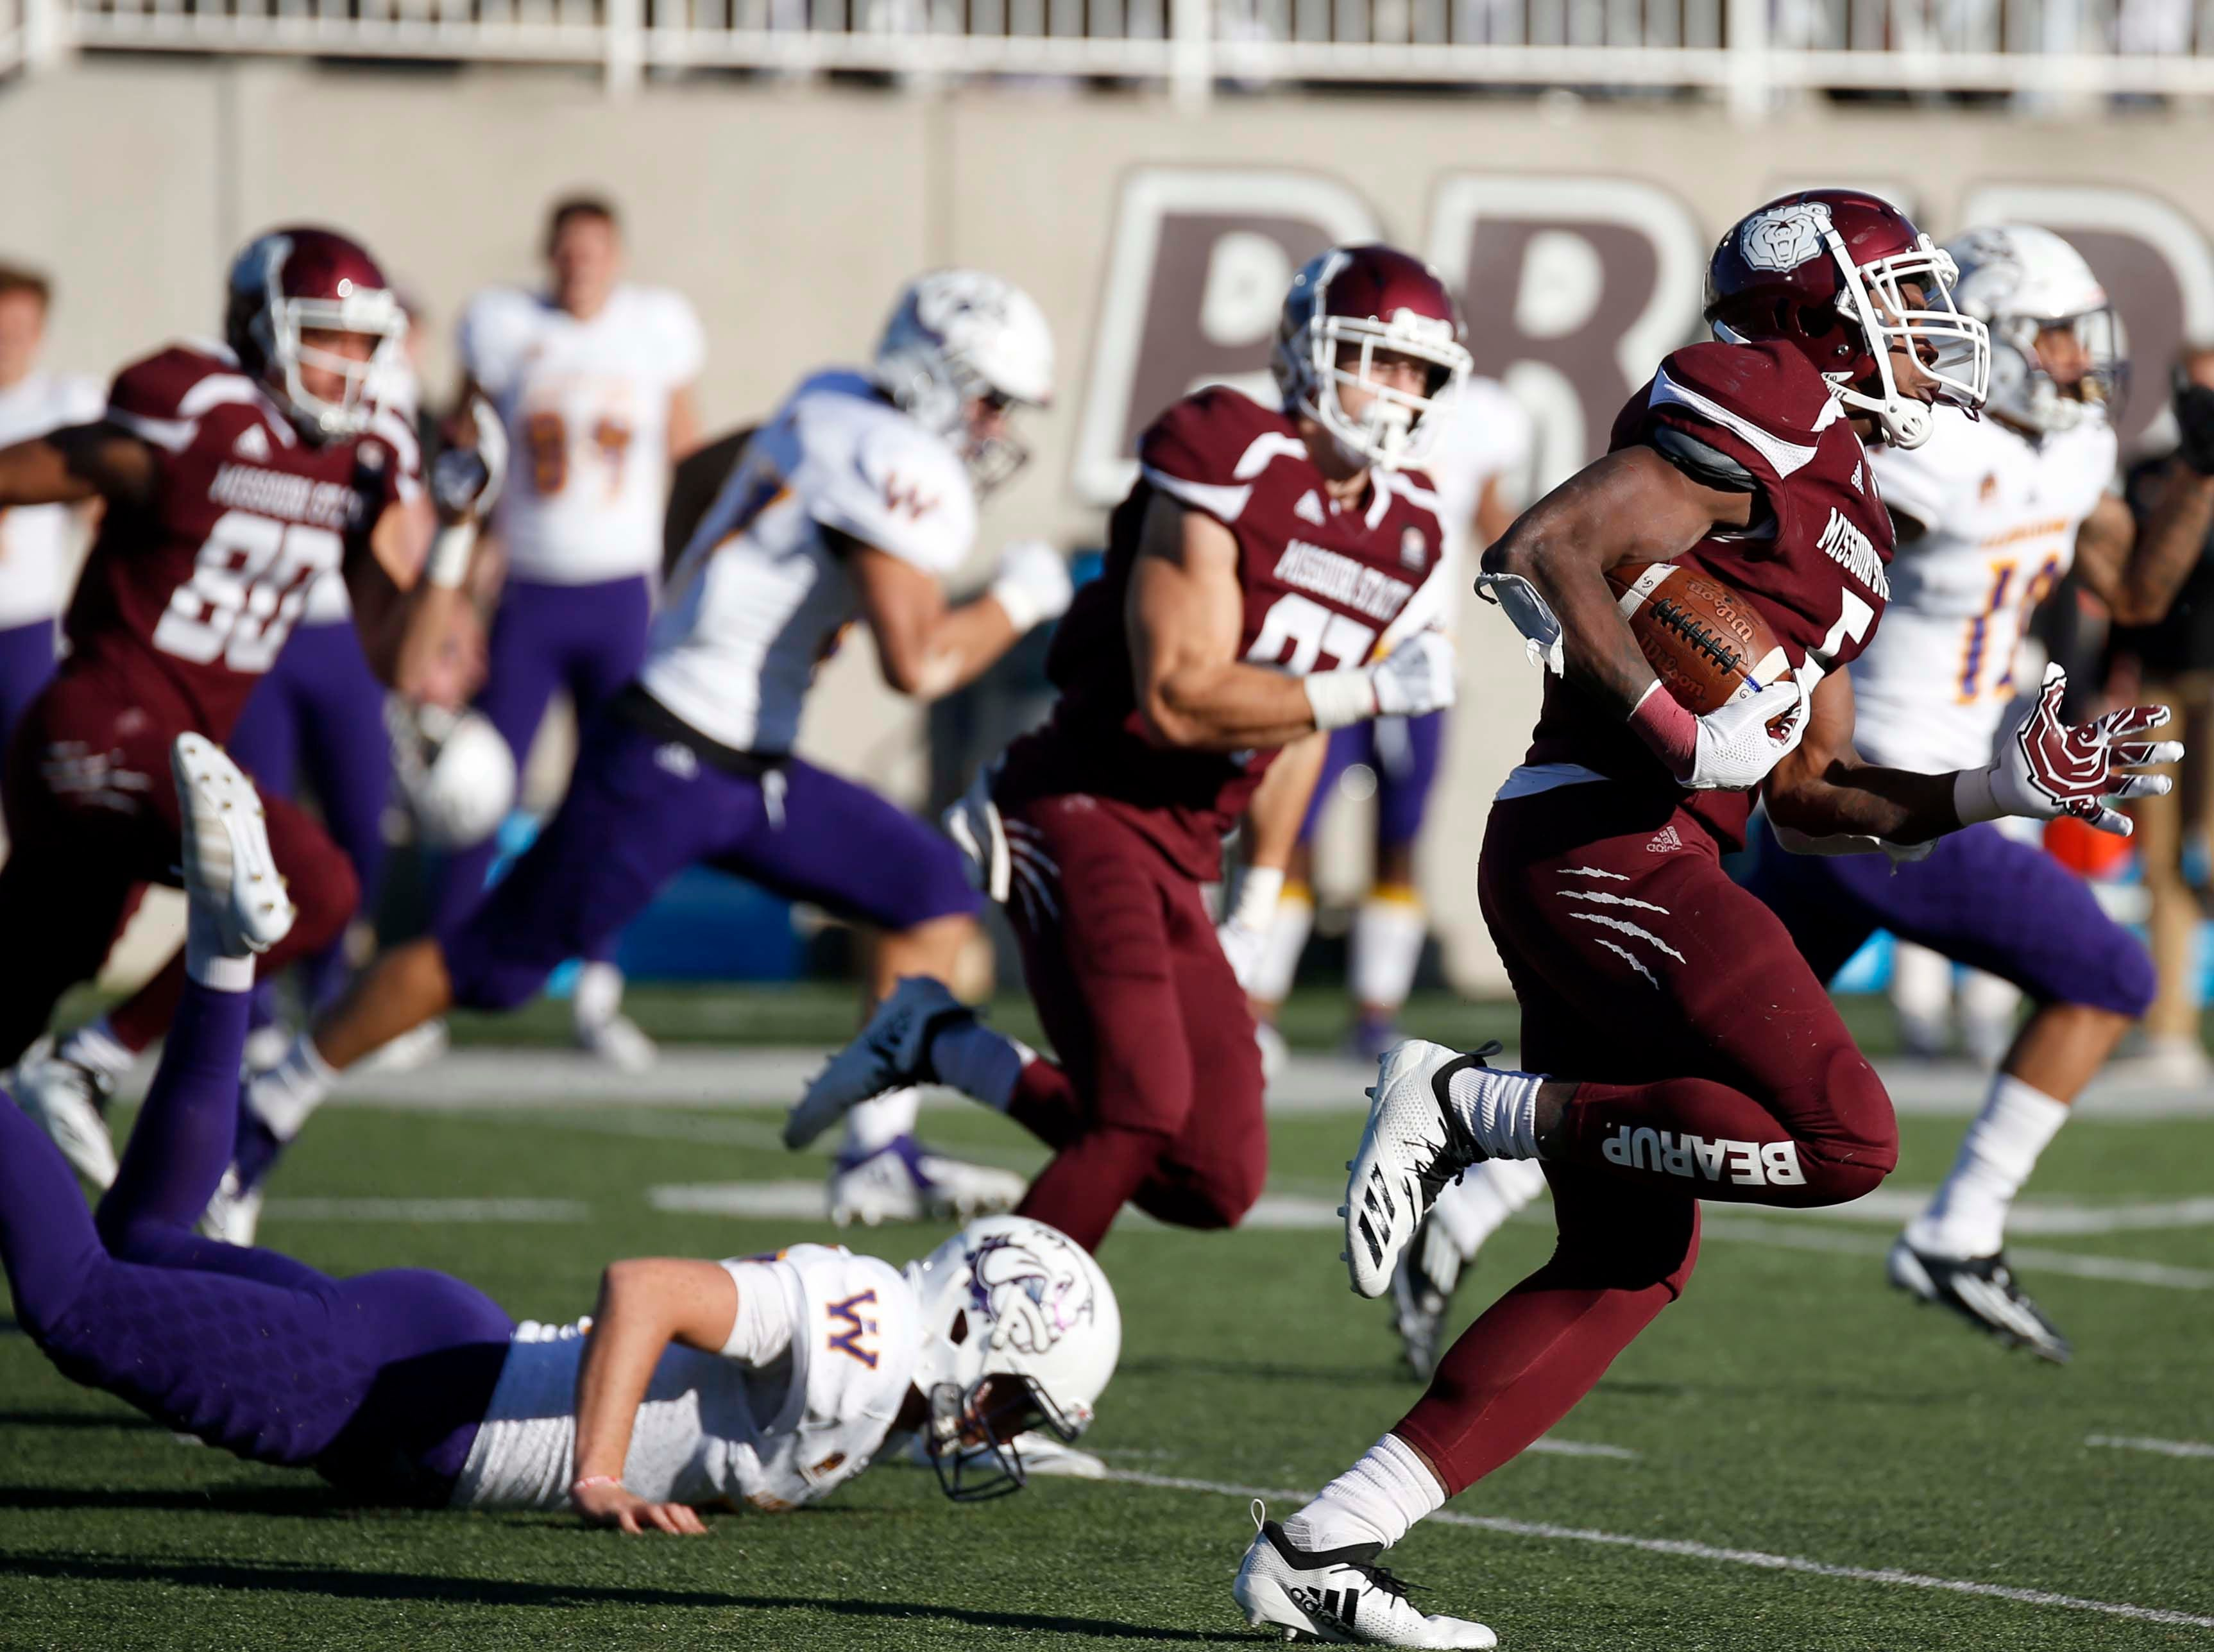 Missouri State against Western Illinois at Plaster Field in Springfield on October 20, 2018.